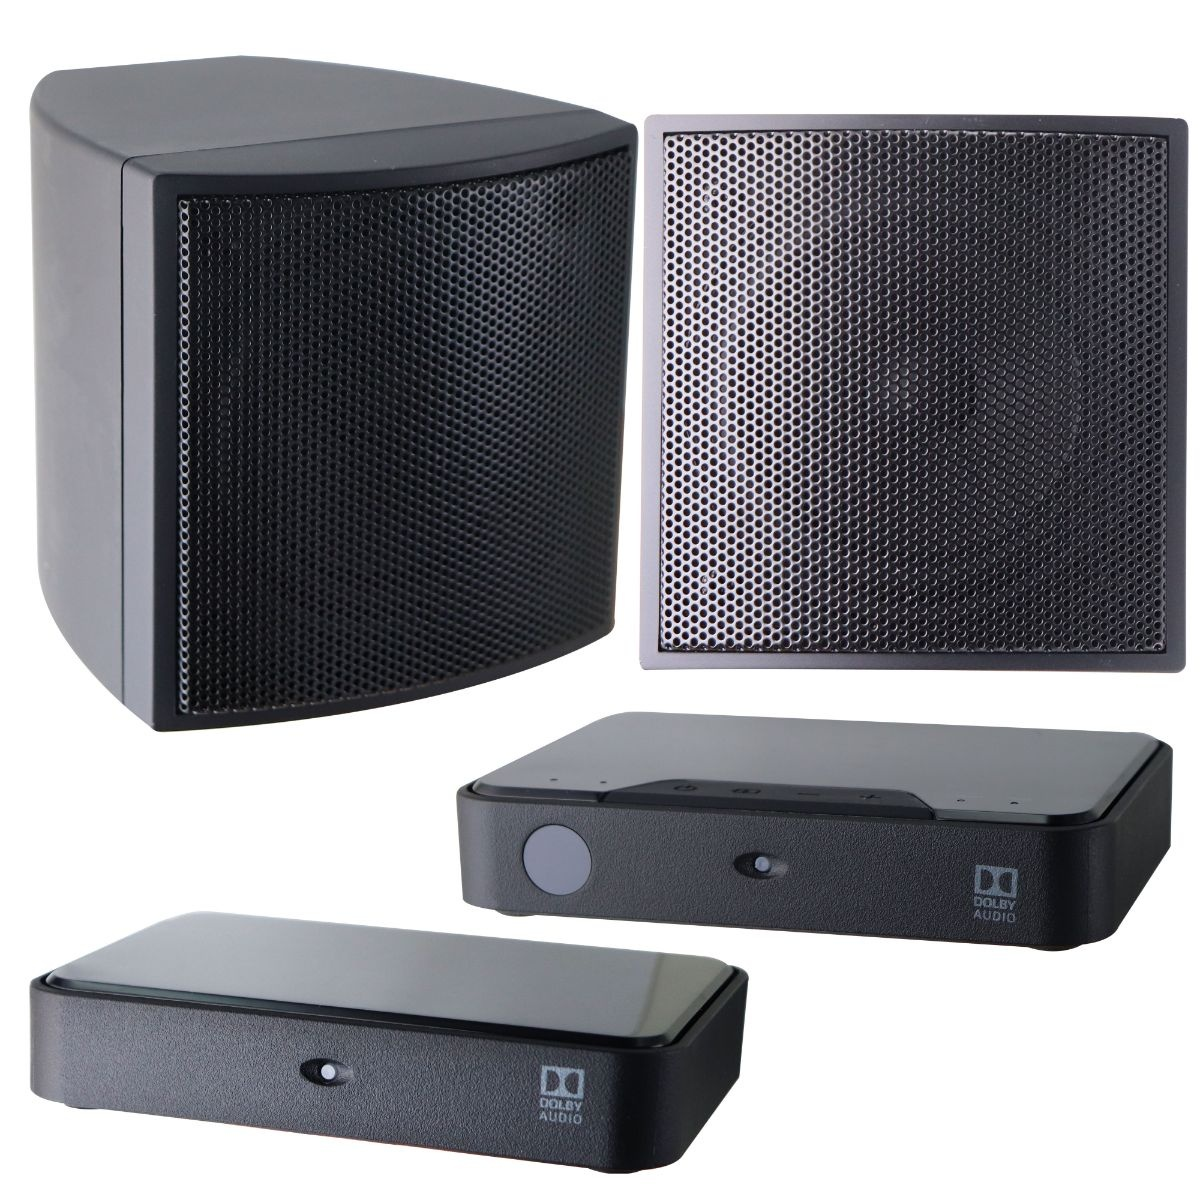 Insignia Wireless Rear 2 Speakers and 2 Receivers NS-HURSK18 - Black